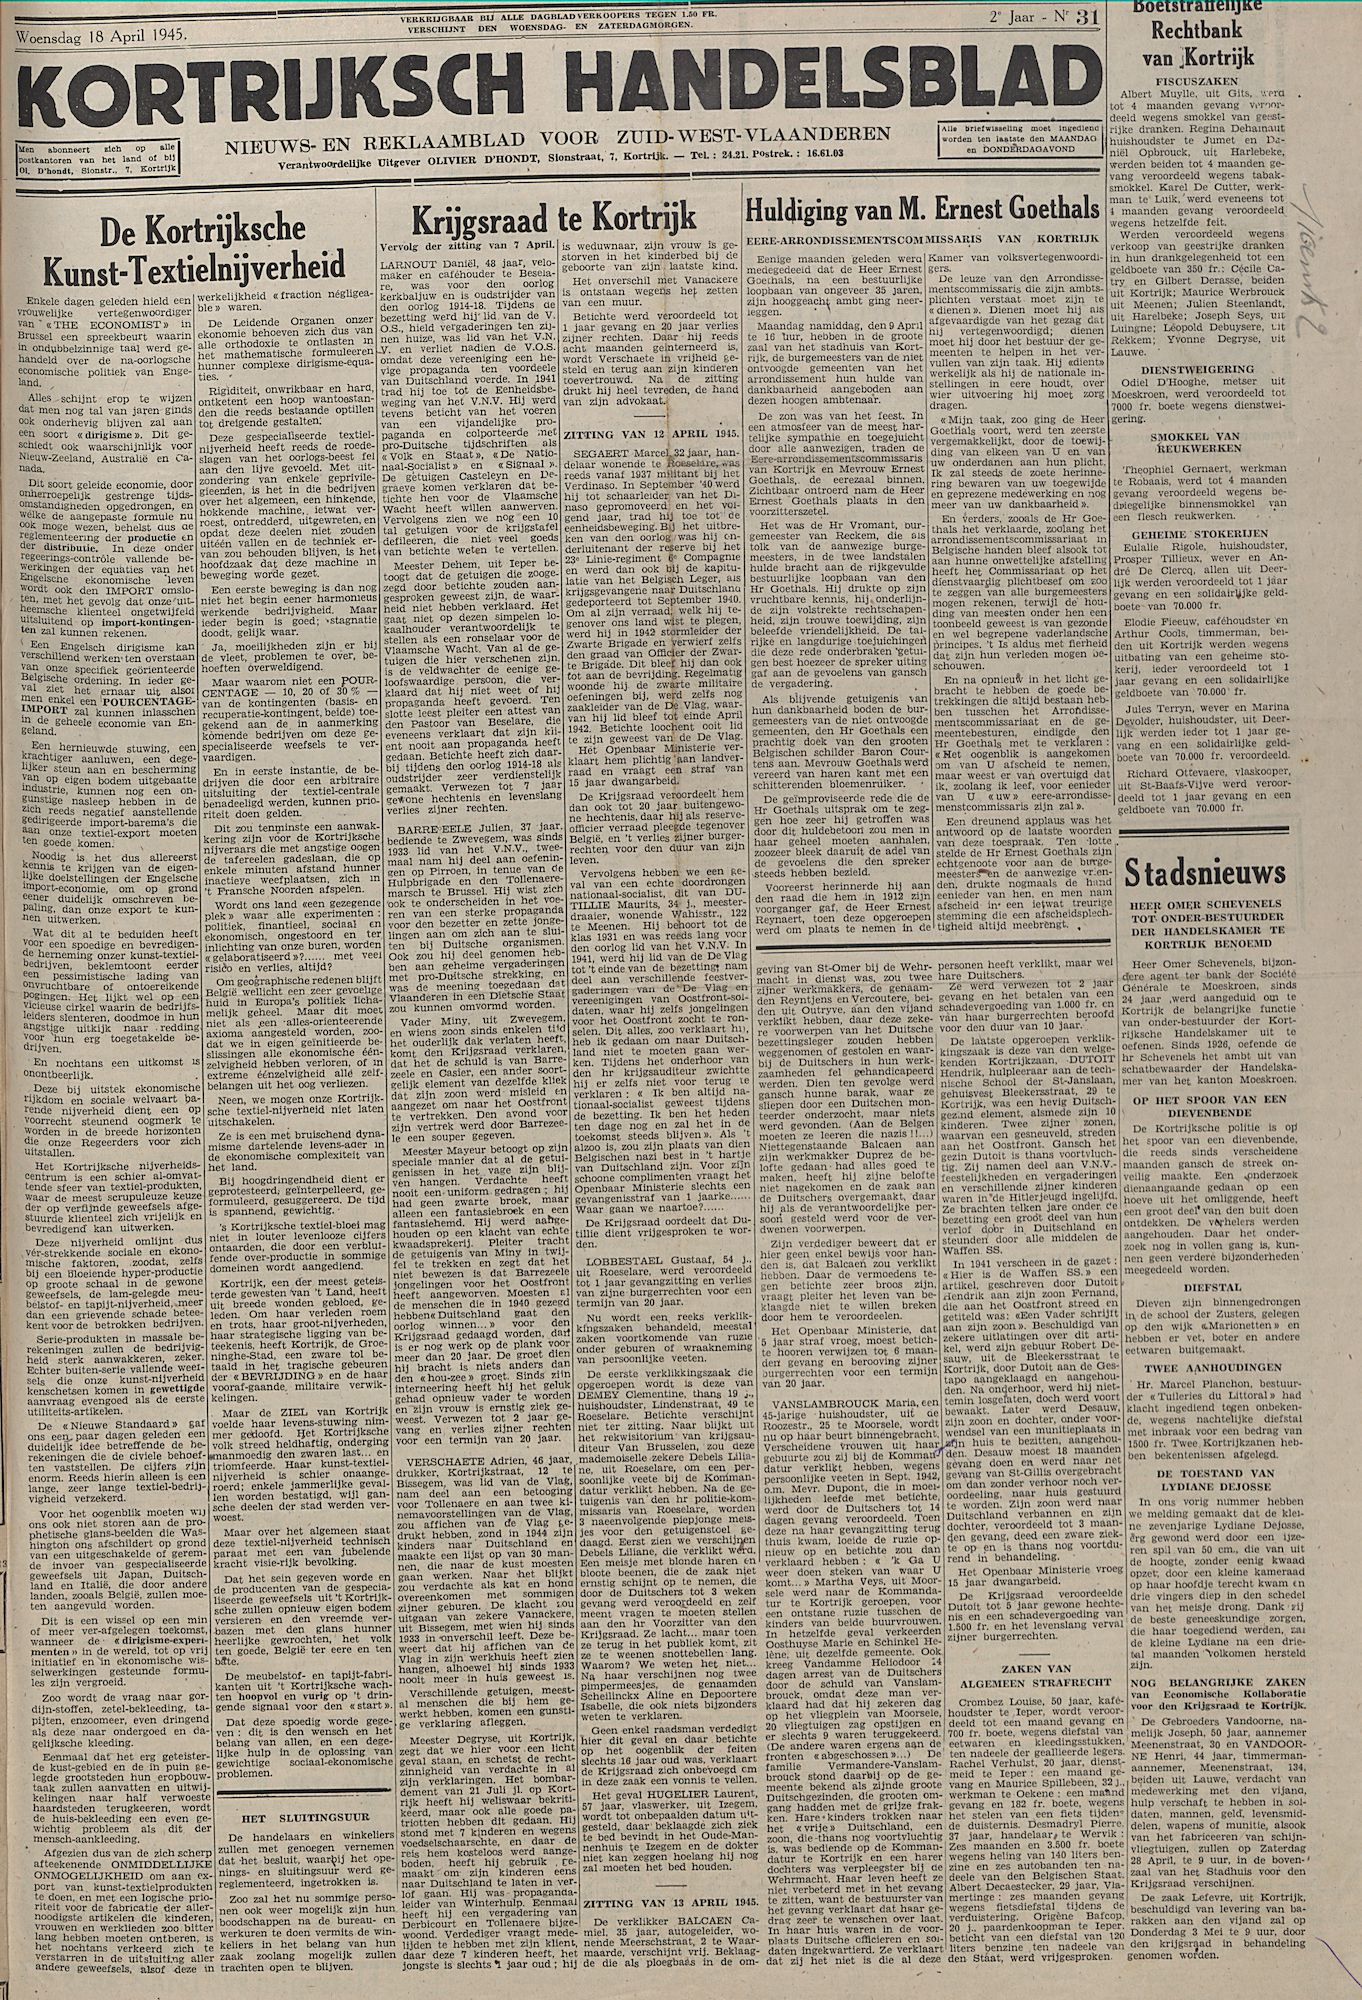 Kortrijksch Handelsblad18 april 1945 N31 p1